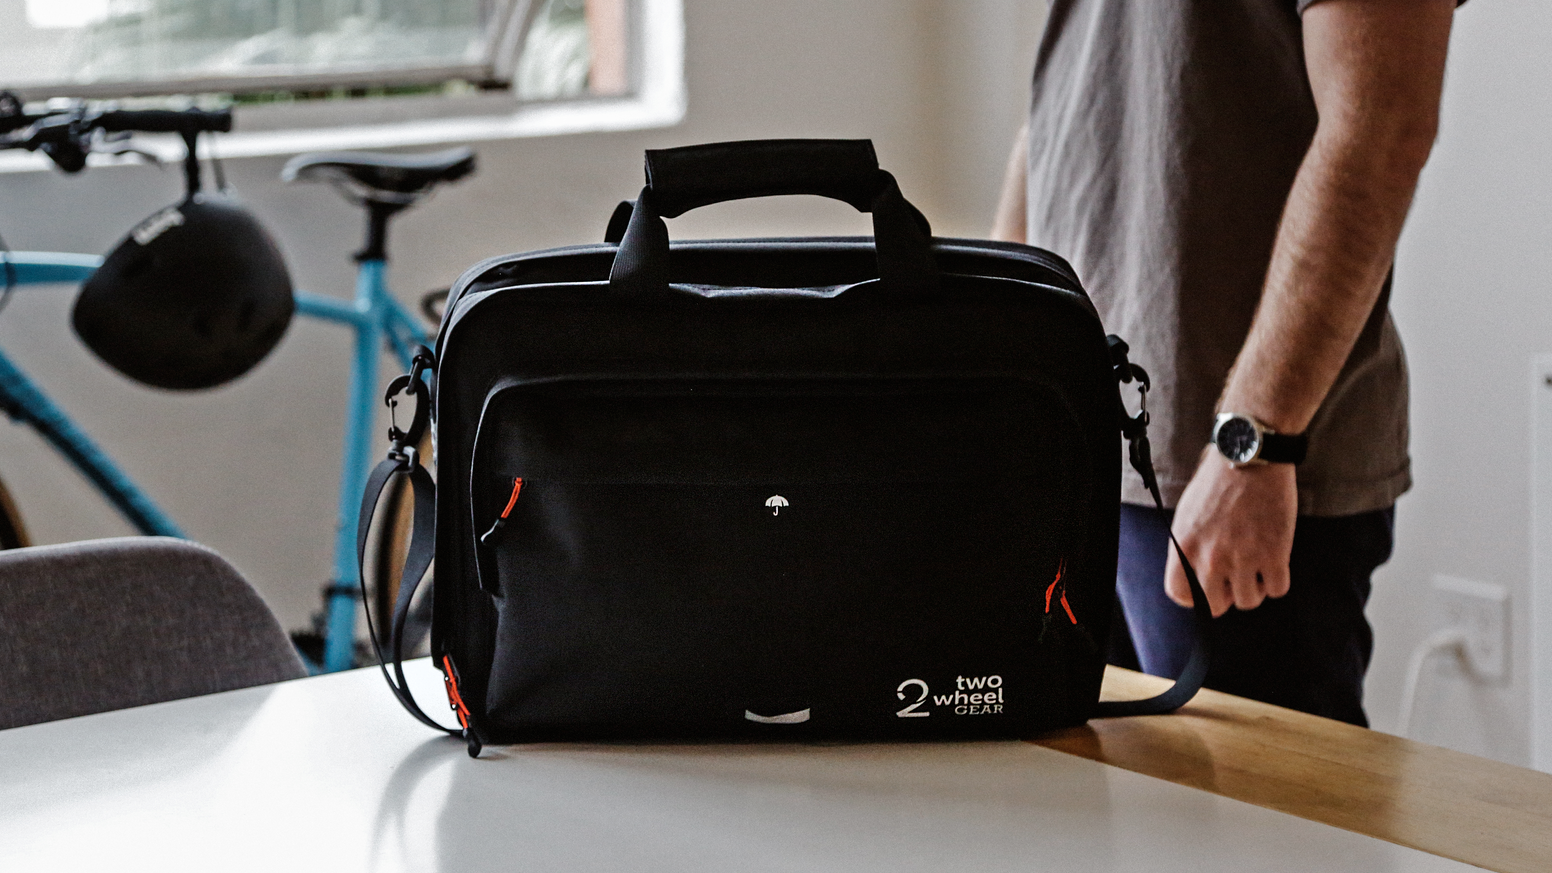 Bike to work or travel as a digital nomad with the world's most organized bike briefcase. Converts from laptop pannier to office bag.